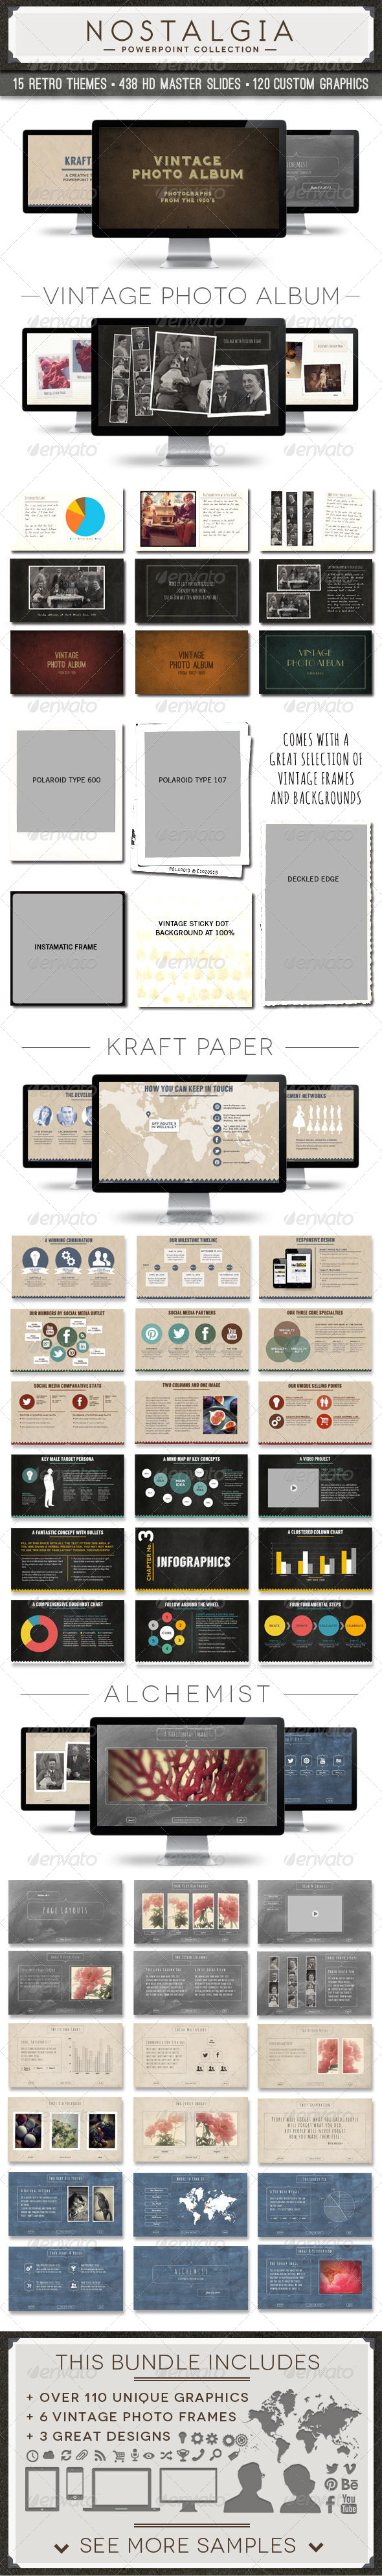 Nostalgia Collection Powerpoint Template Bundle - Creative Powerpoint Templates